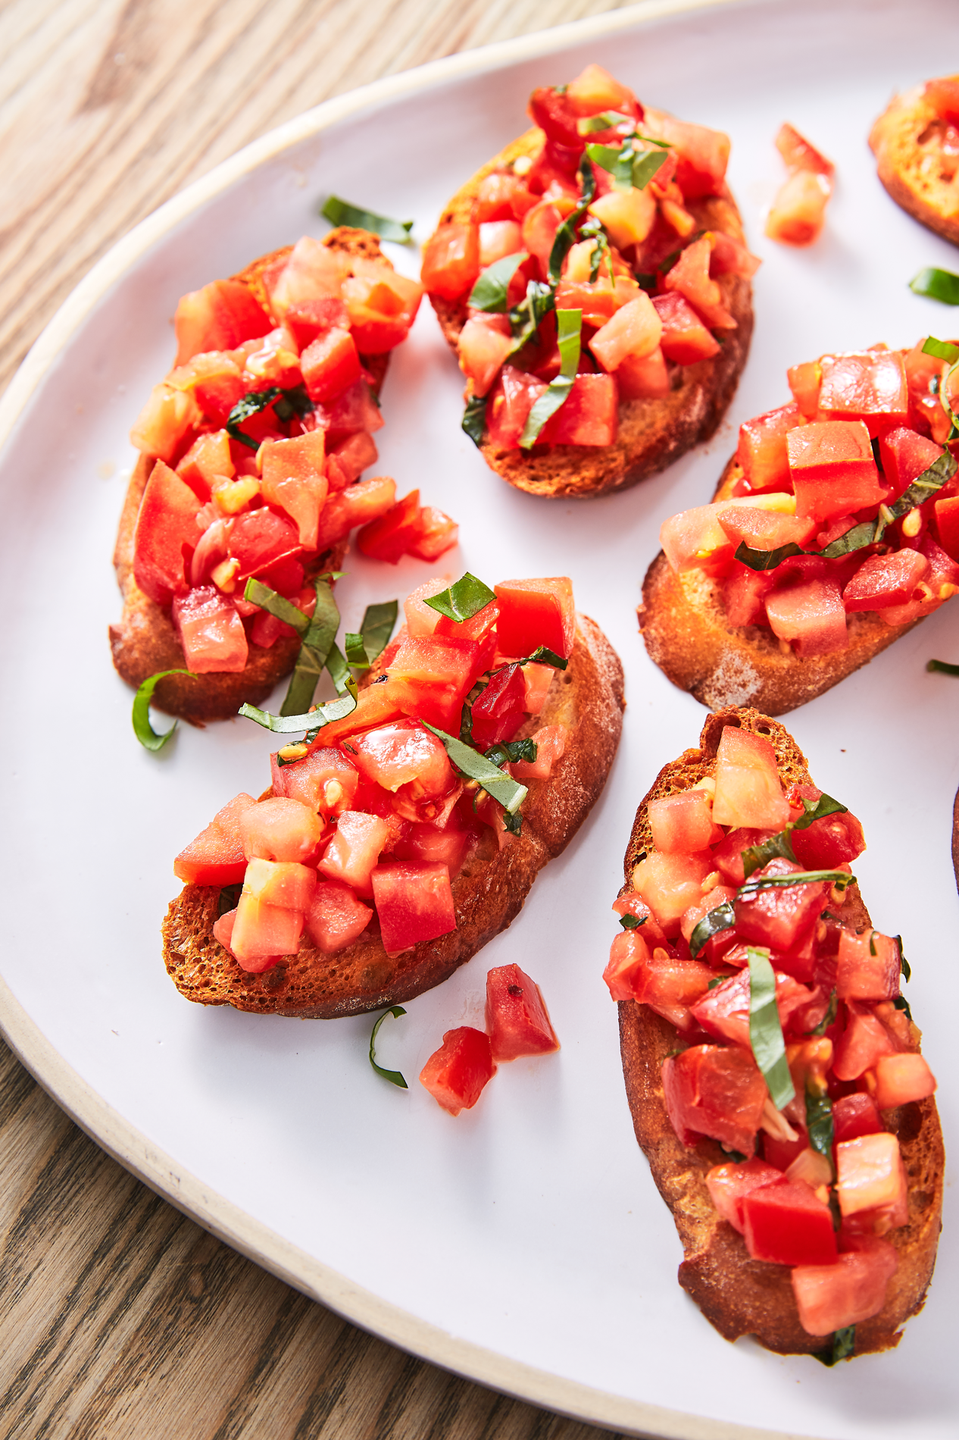 "<p>Use up the last of those juicy summer tomatoes with this easy bruschetta.</p><p>Get the recipe from <a href=""https://www.delish.com/cooking/recipe-ideas/a27409128/best-bruschetta-tomato-recipe/"" rel=""nofollow noopener"" target=""_blank"" data-ylk=""slk:Delish"" class=""link rapid-noclick-resp"">Delish</a>.<br></p>"